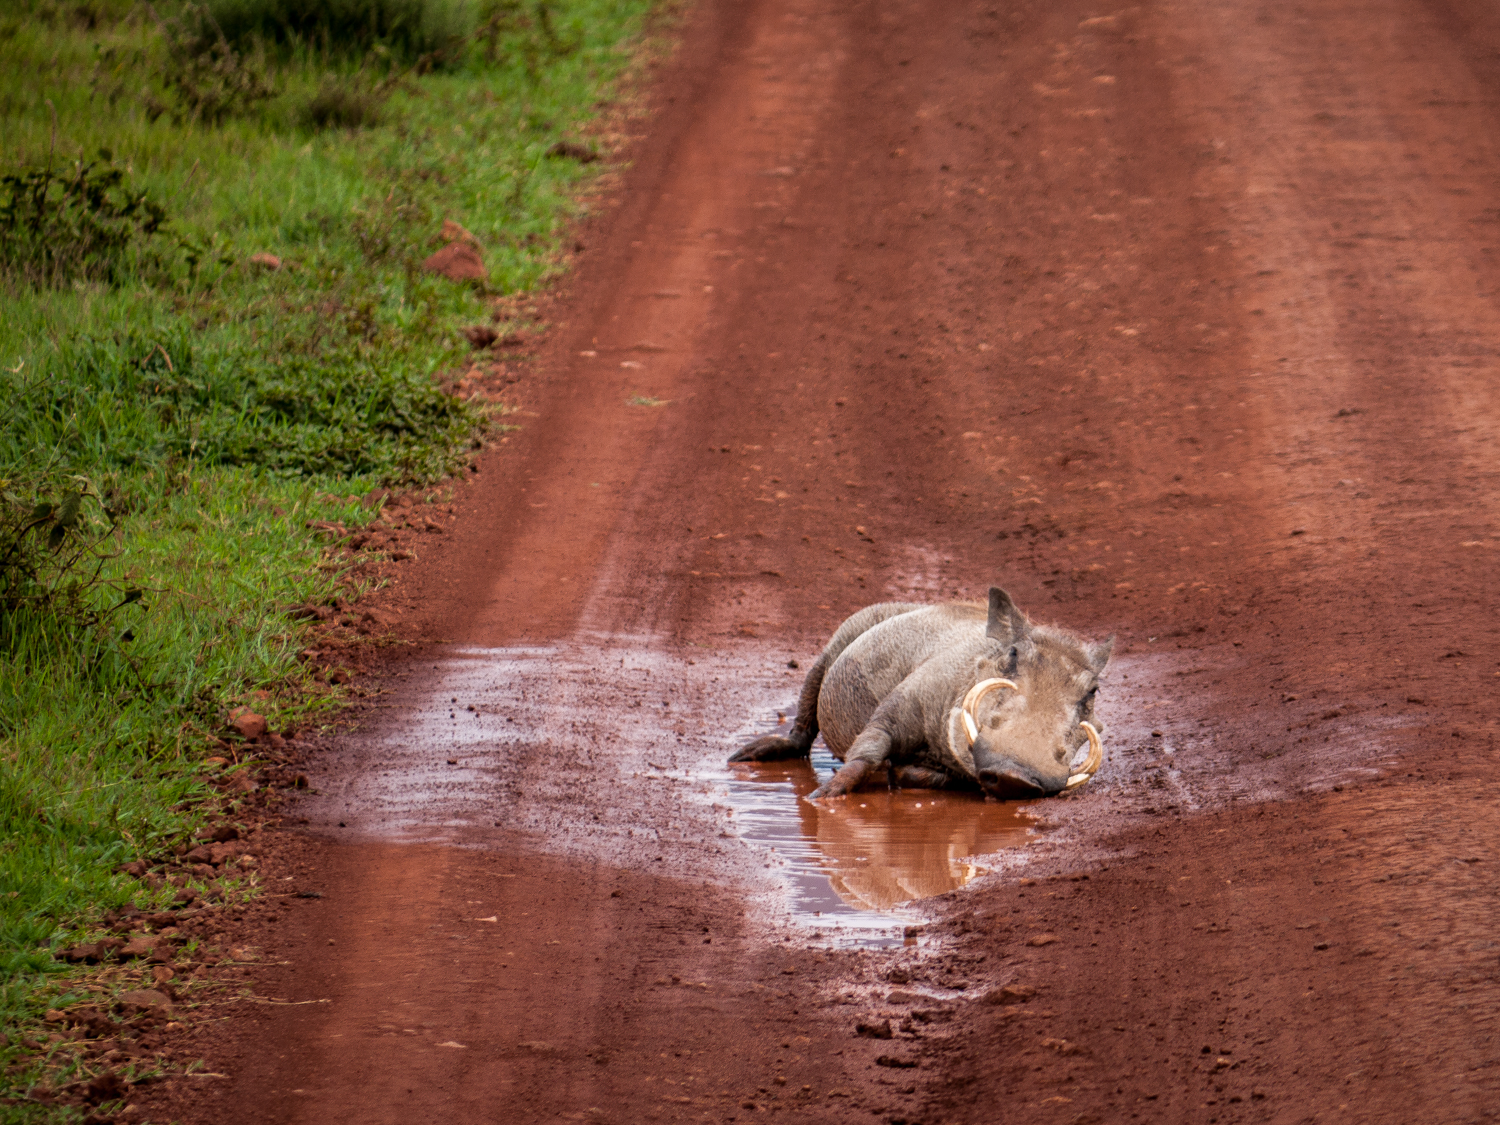 Warthog in Mud Puddle